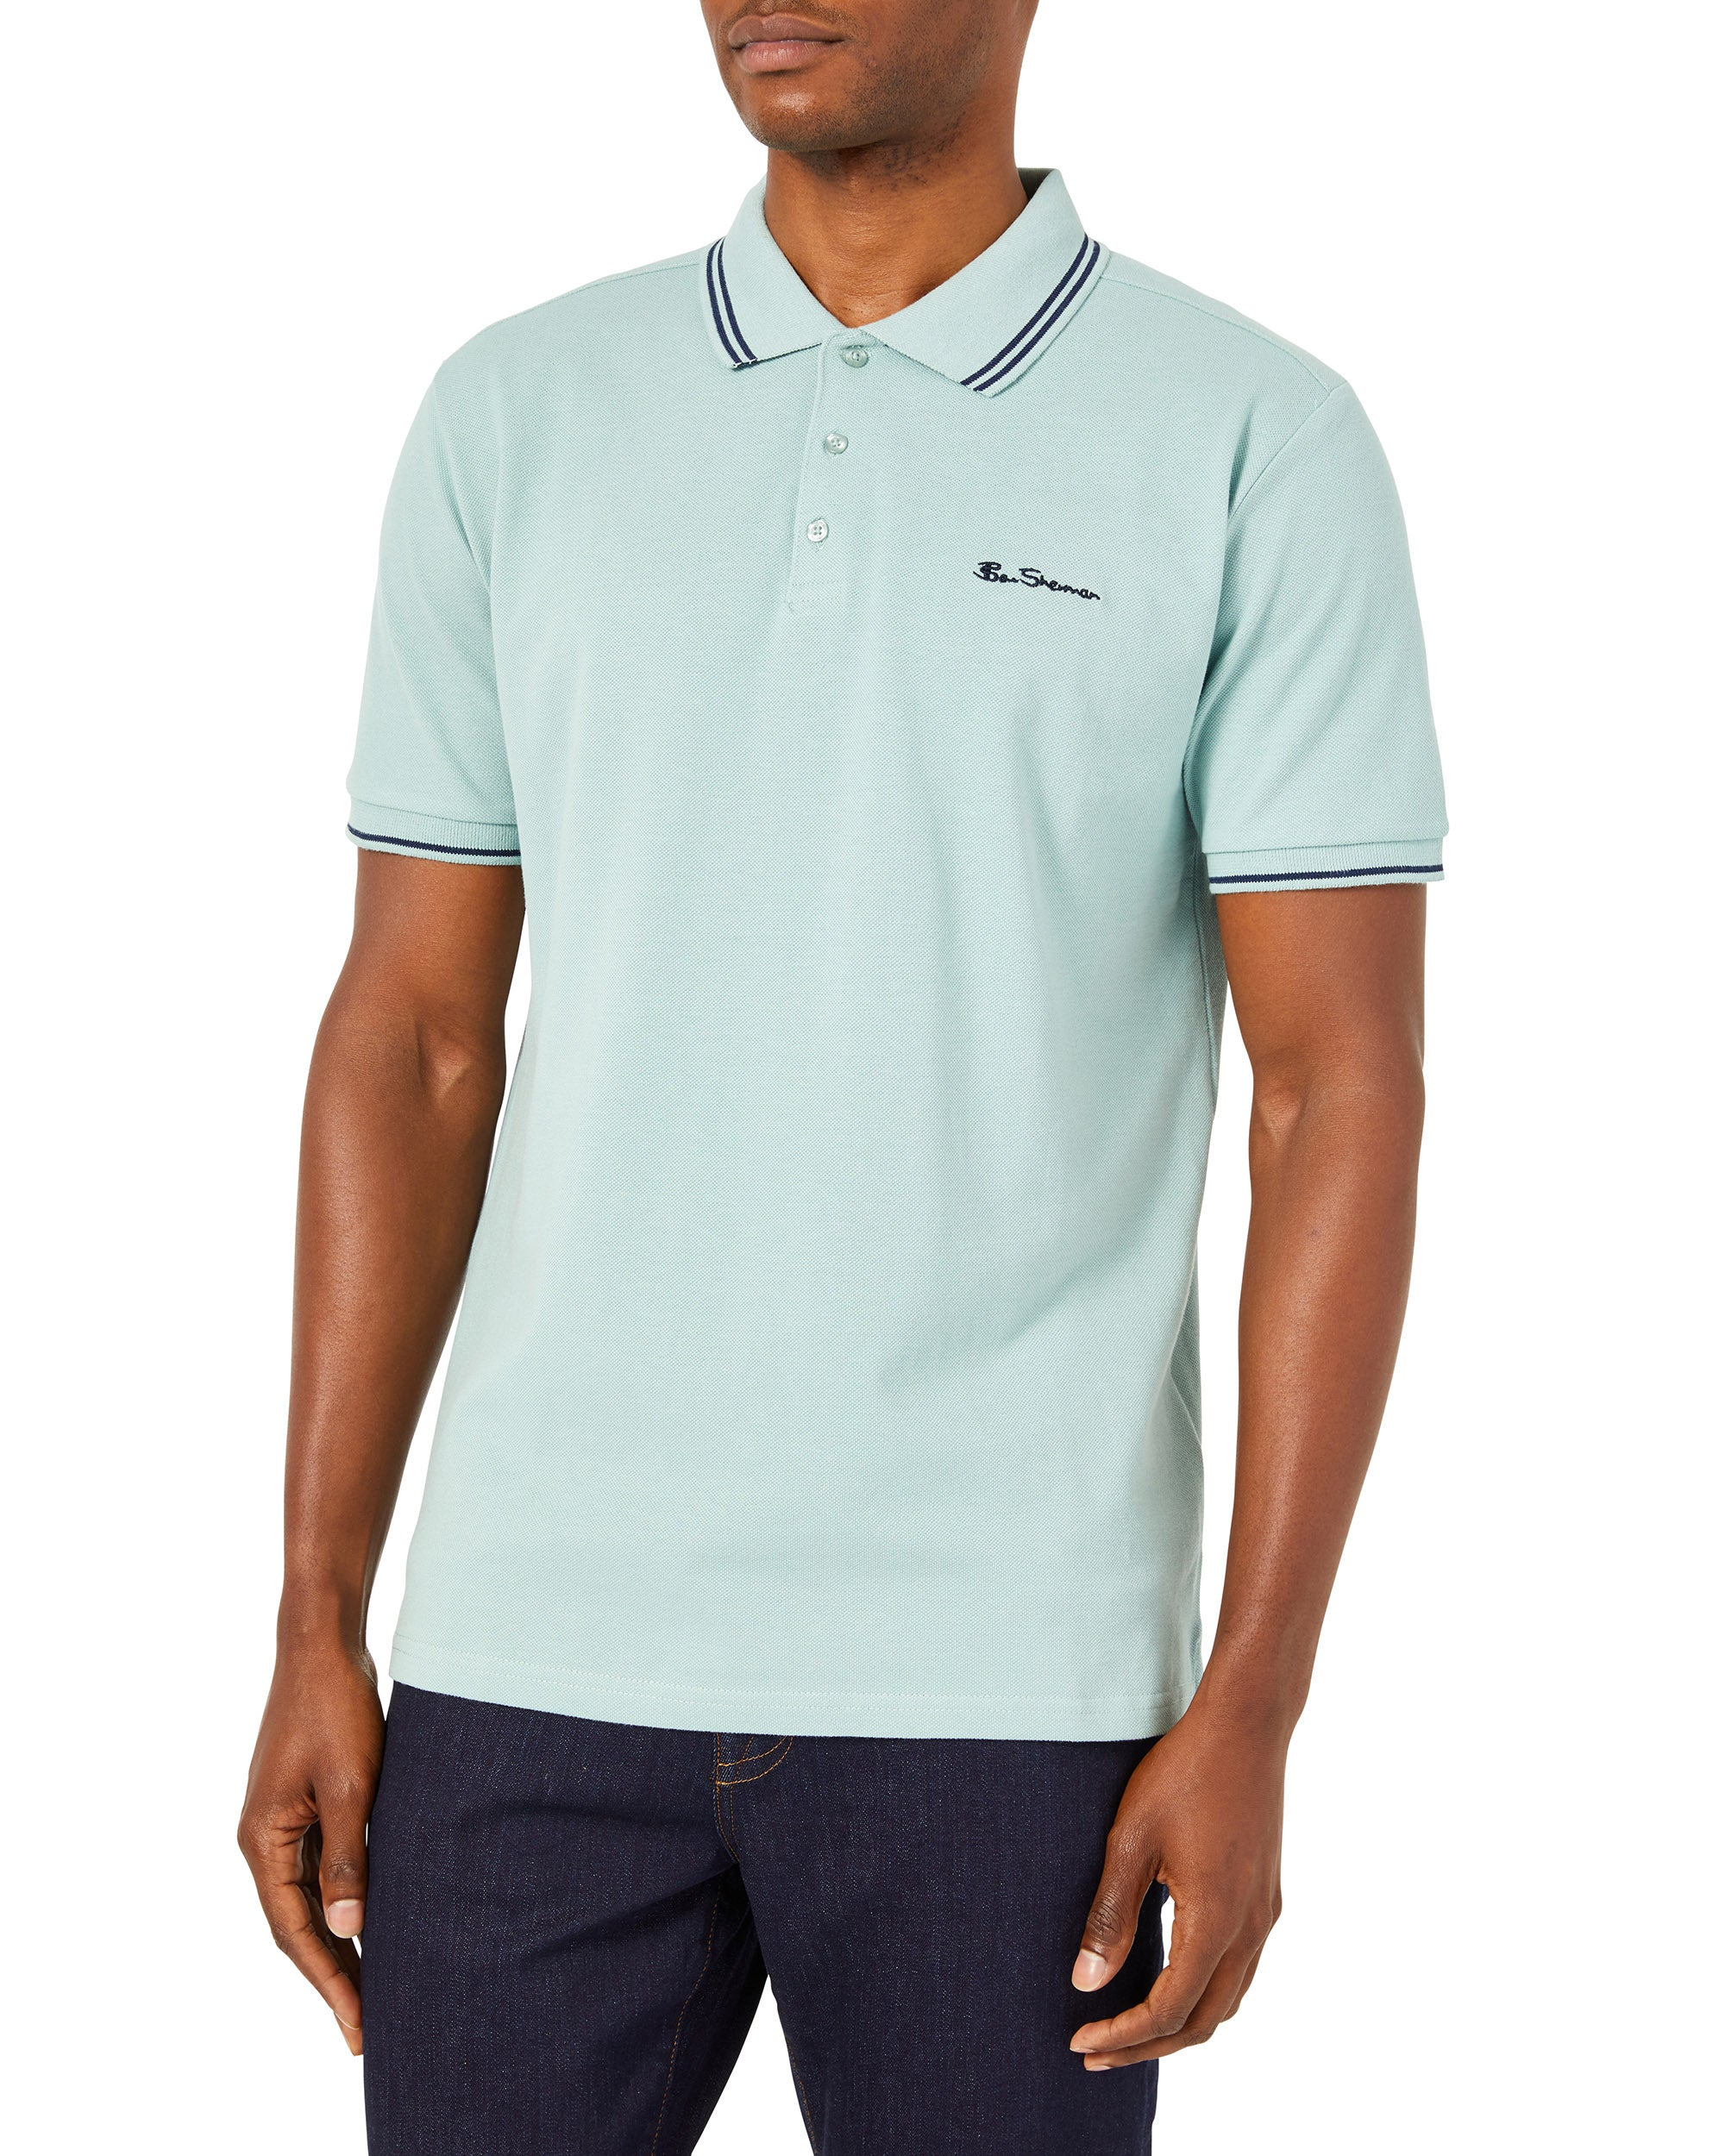 Script Tipped Pique Polo Shirt - Mint/Navy